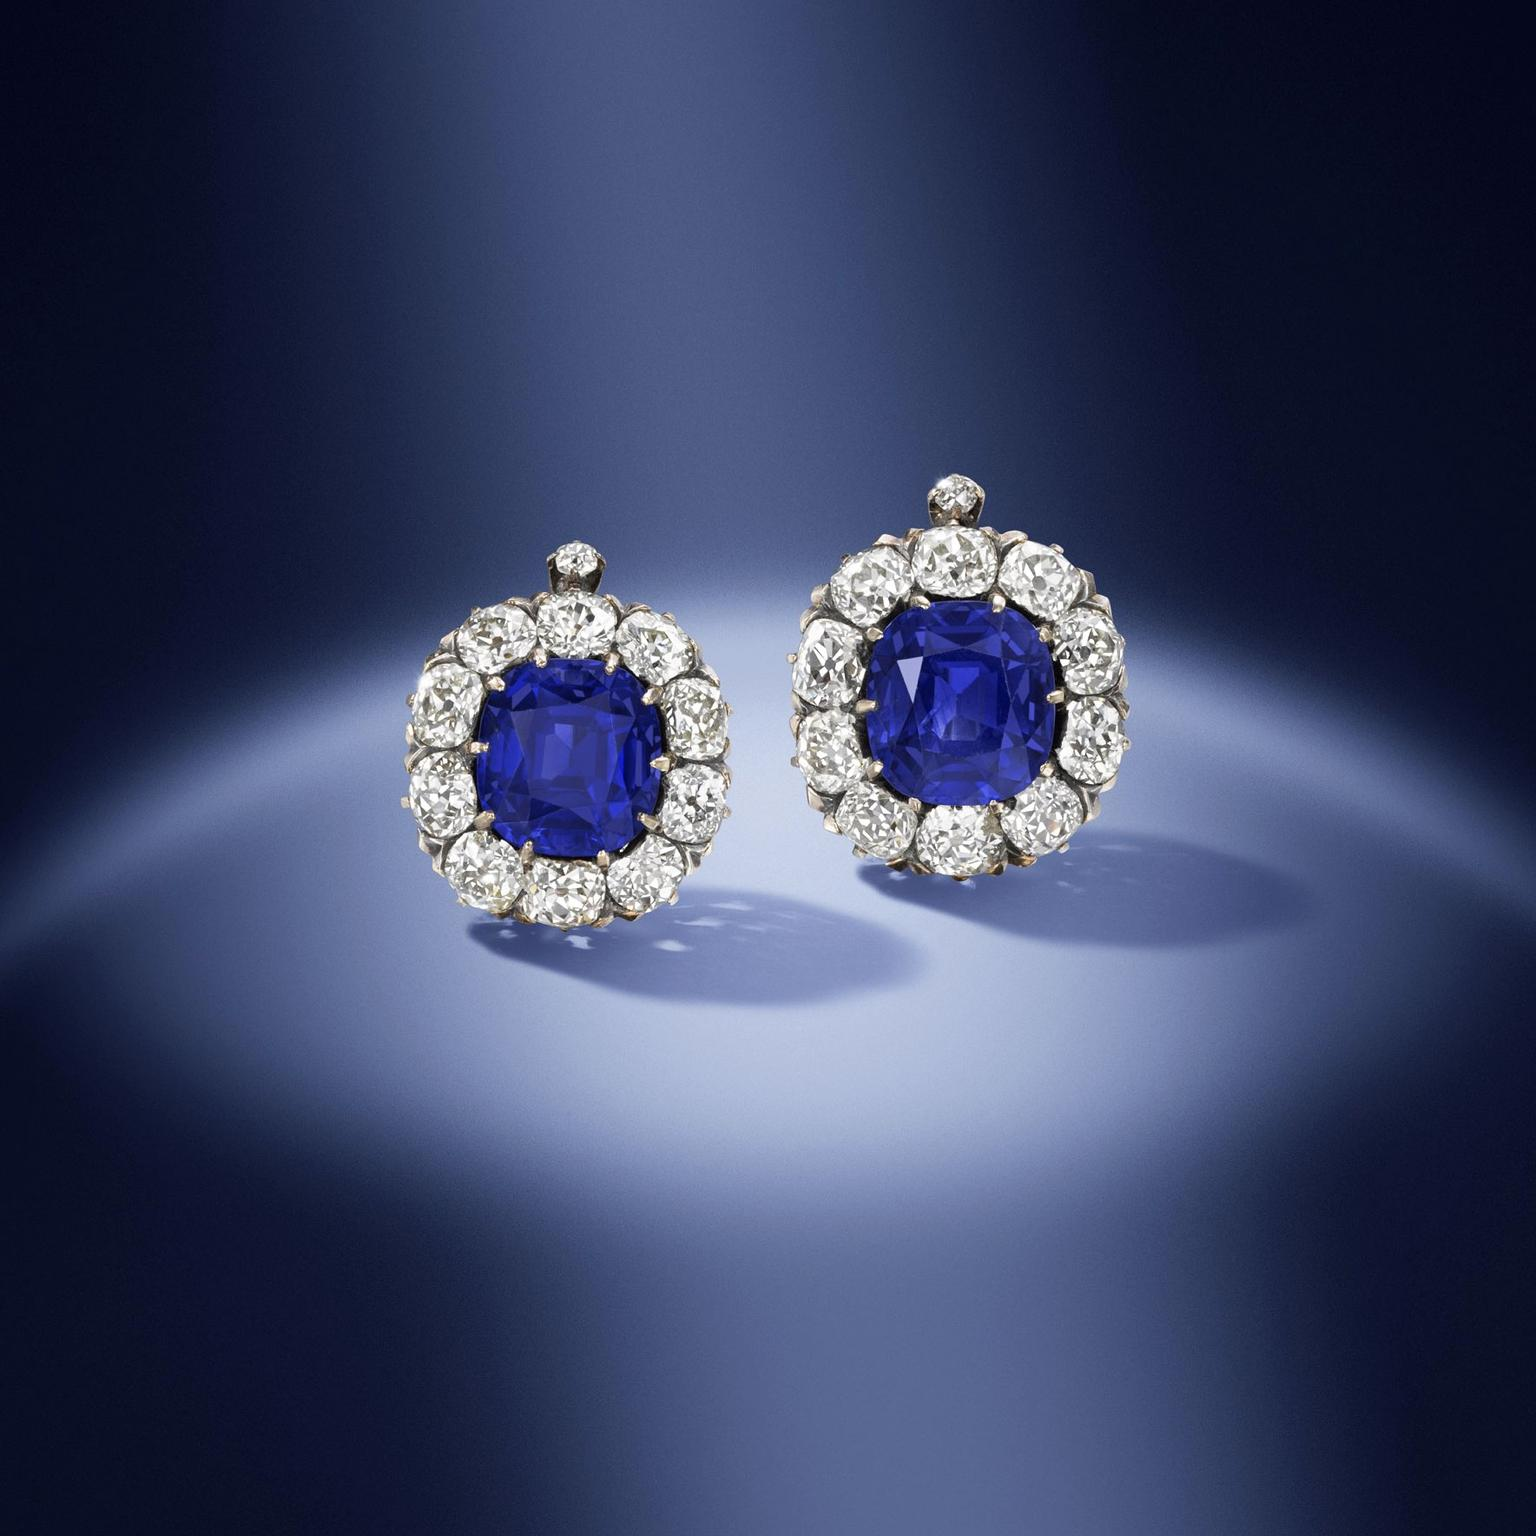 19th century Kashmir sapphire earrings